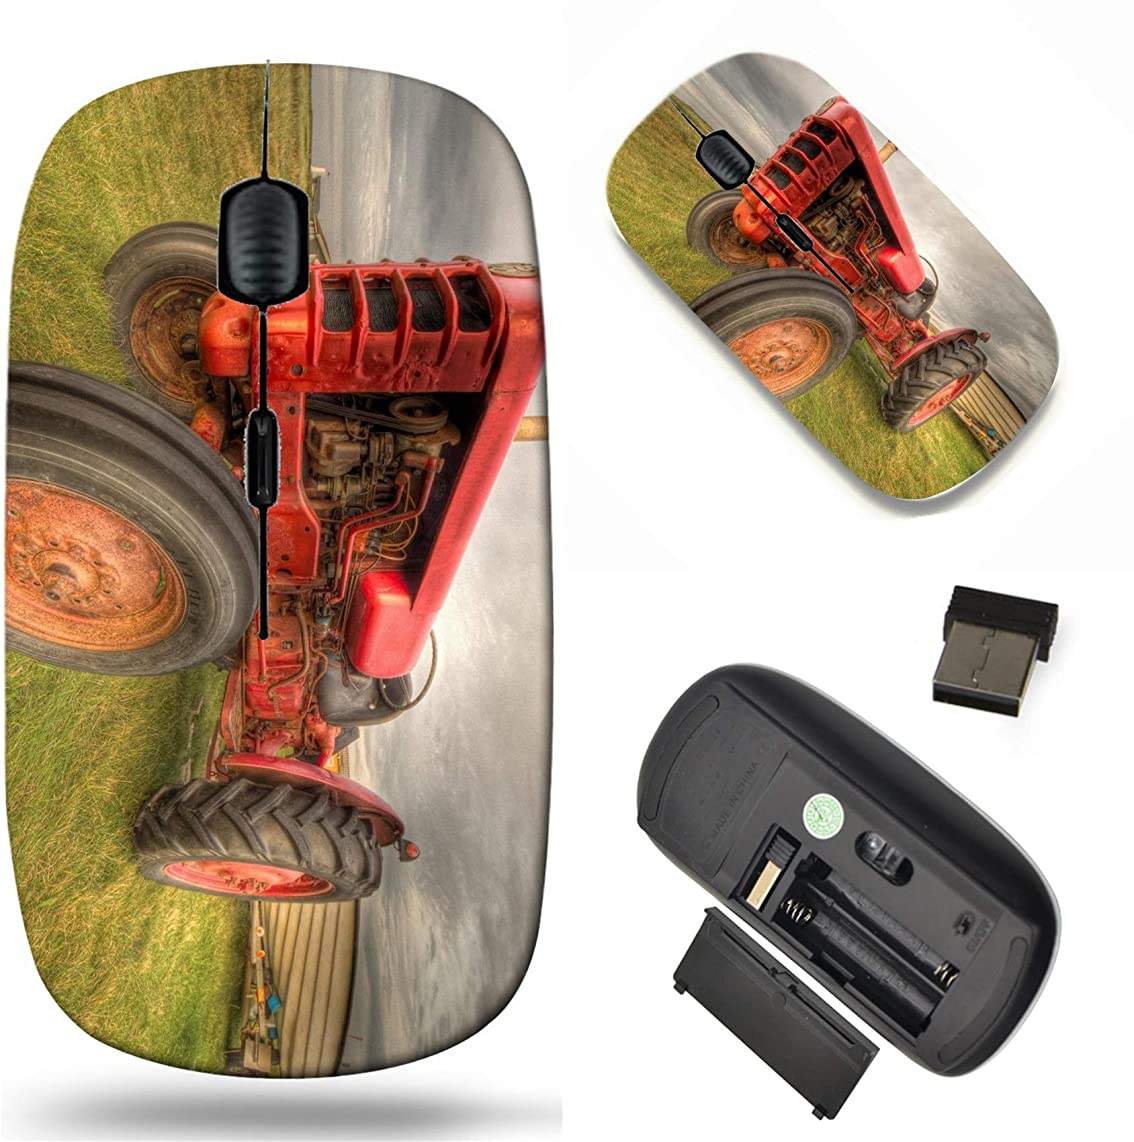 Wireless Mouse 2.4G Black Base Travel Wireless Mice with USB Receiver, Noiseless and Silent Click with 1000 DPI for Notebook pc Laptop Computer MacBook Image of Tractor Agriculture Farm Farming Rural